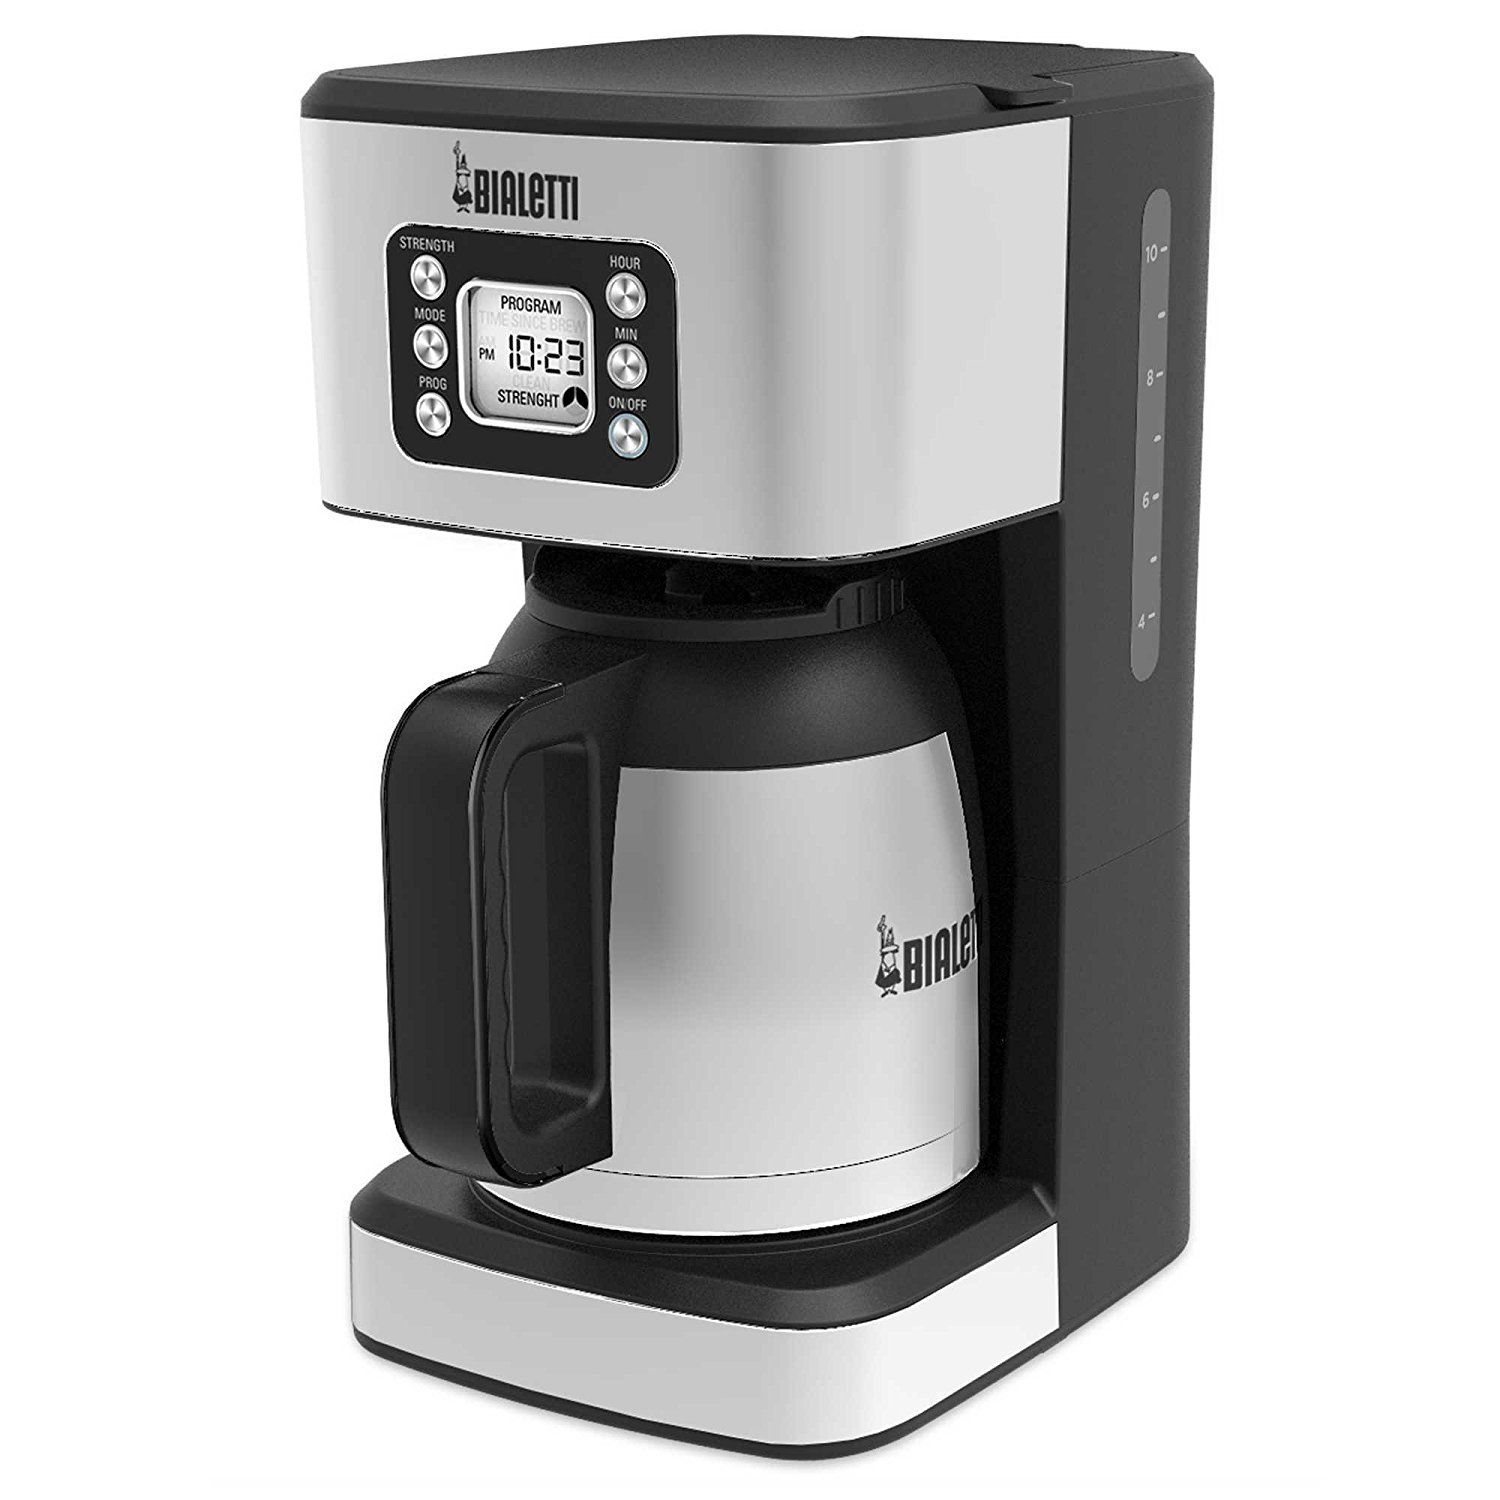 Bialetti Thermal Coffee Maker >>> Quickly view this